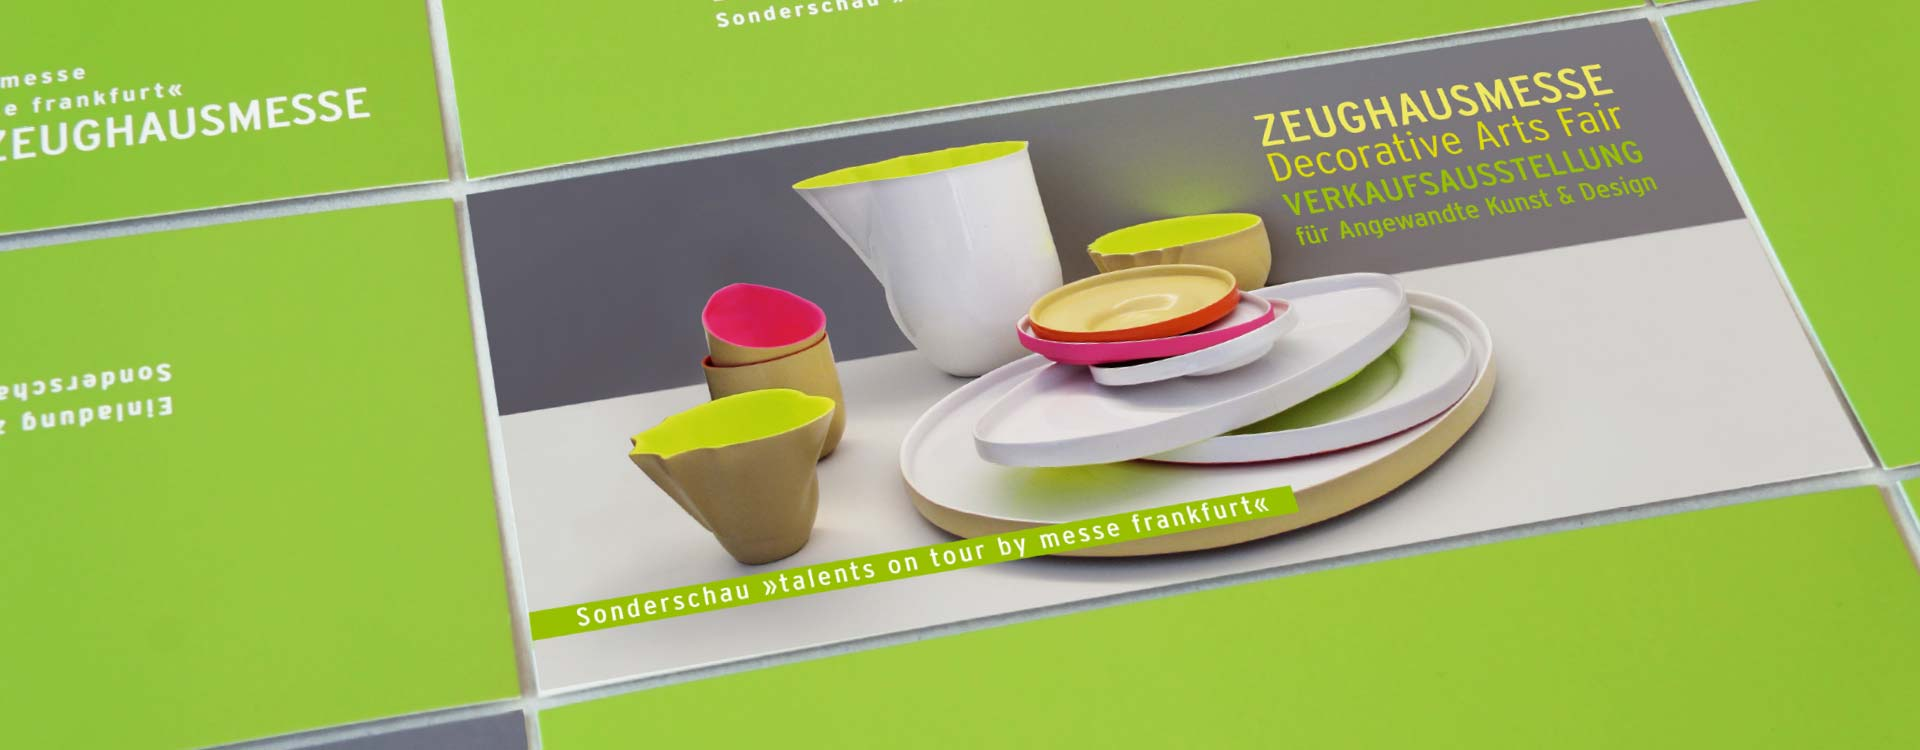 Invitation cards for Zeughausmesse; Design: Kattrin Richter | Graphic Design Studio